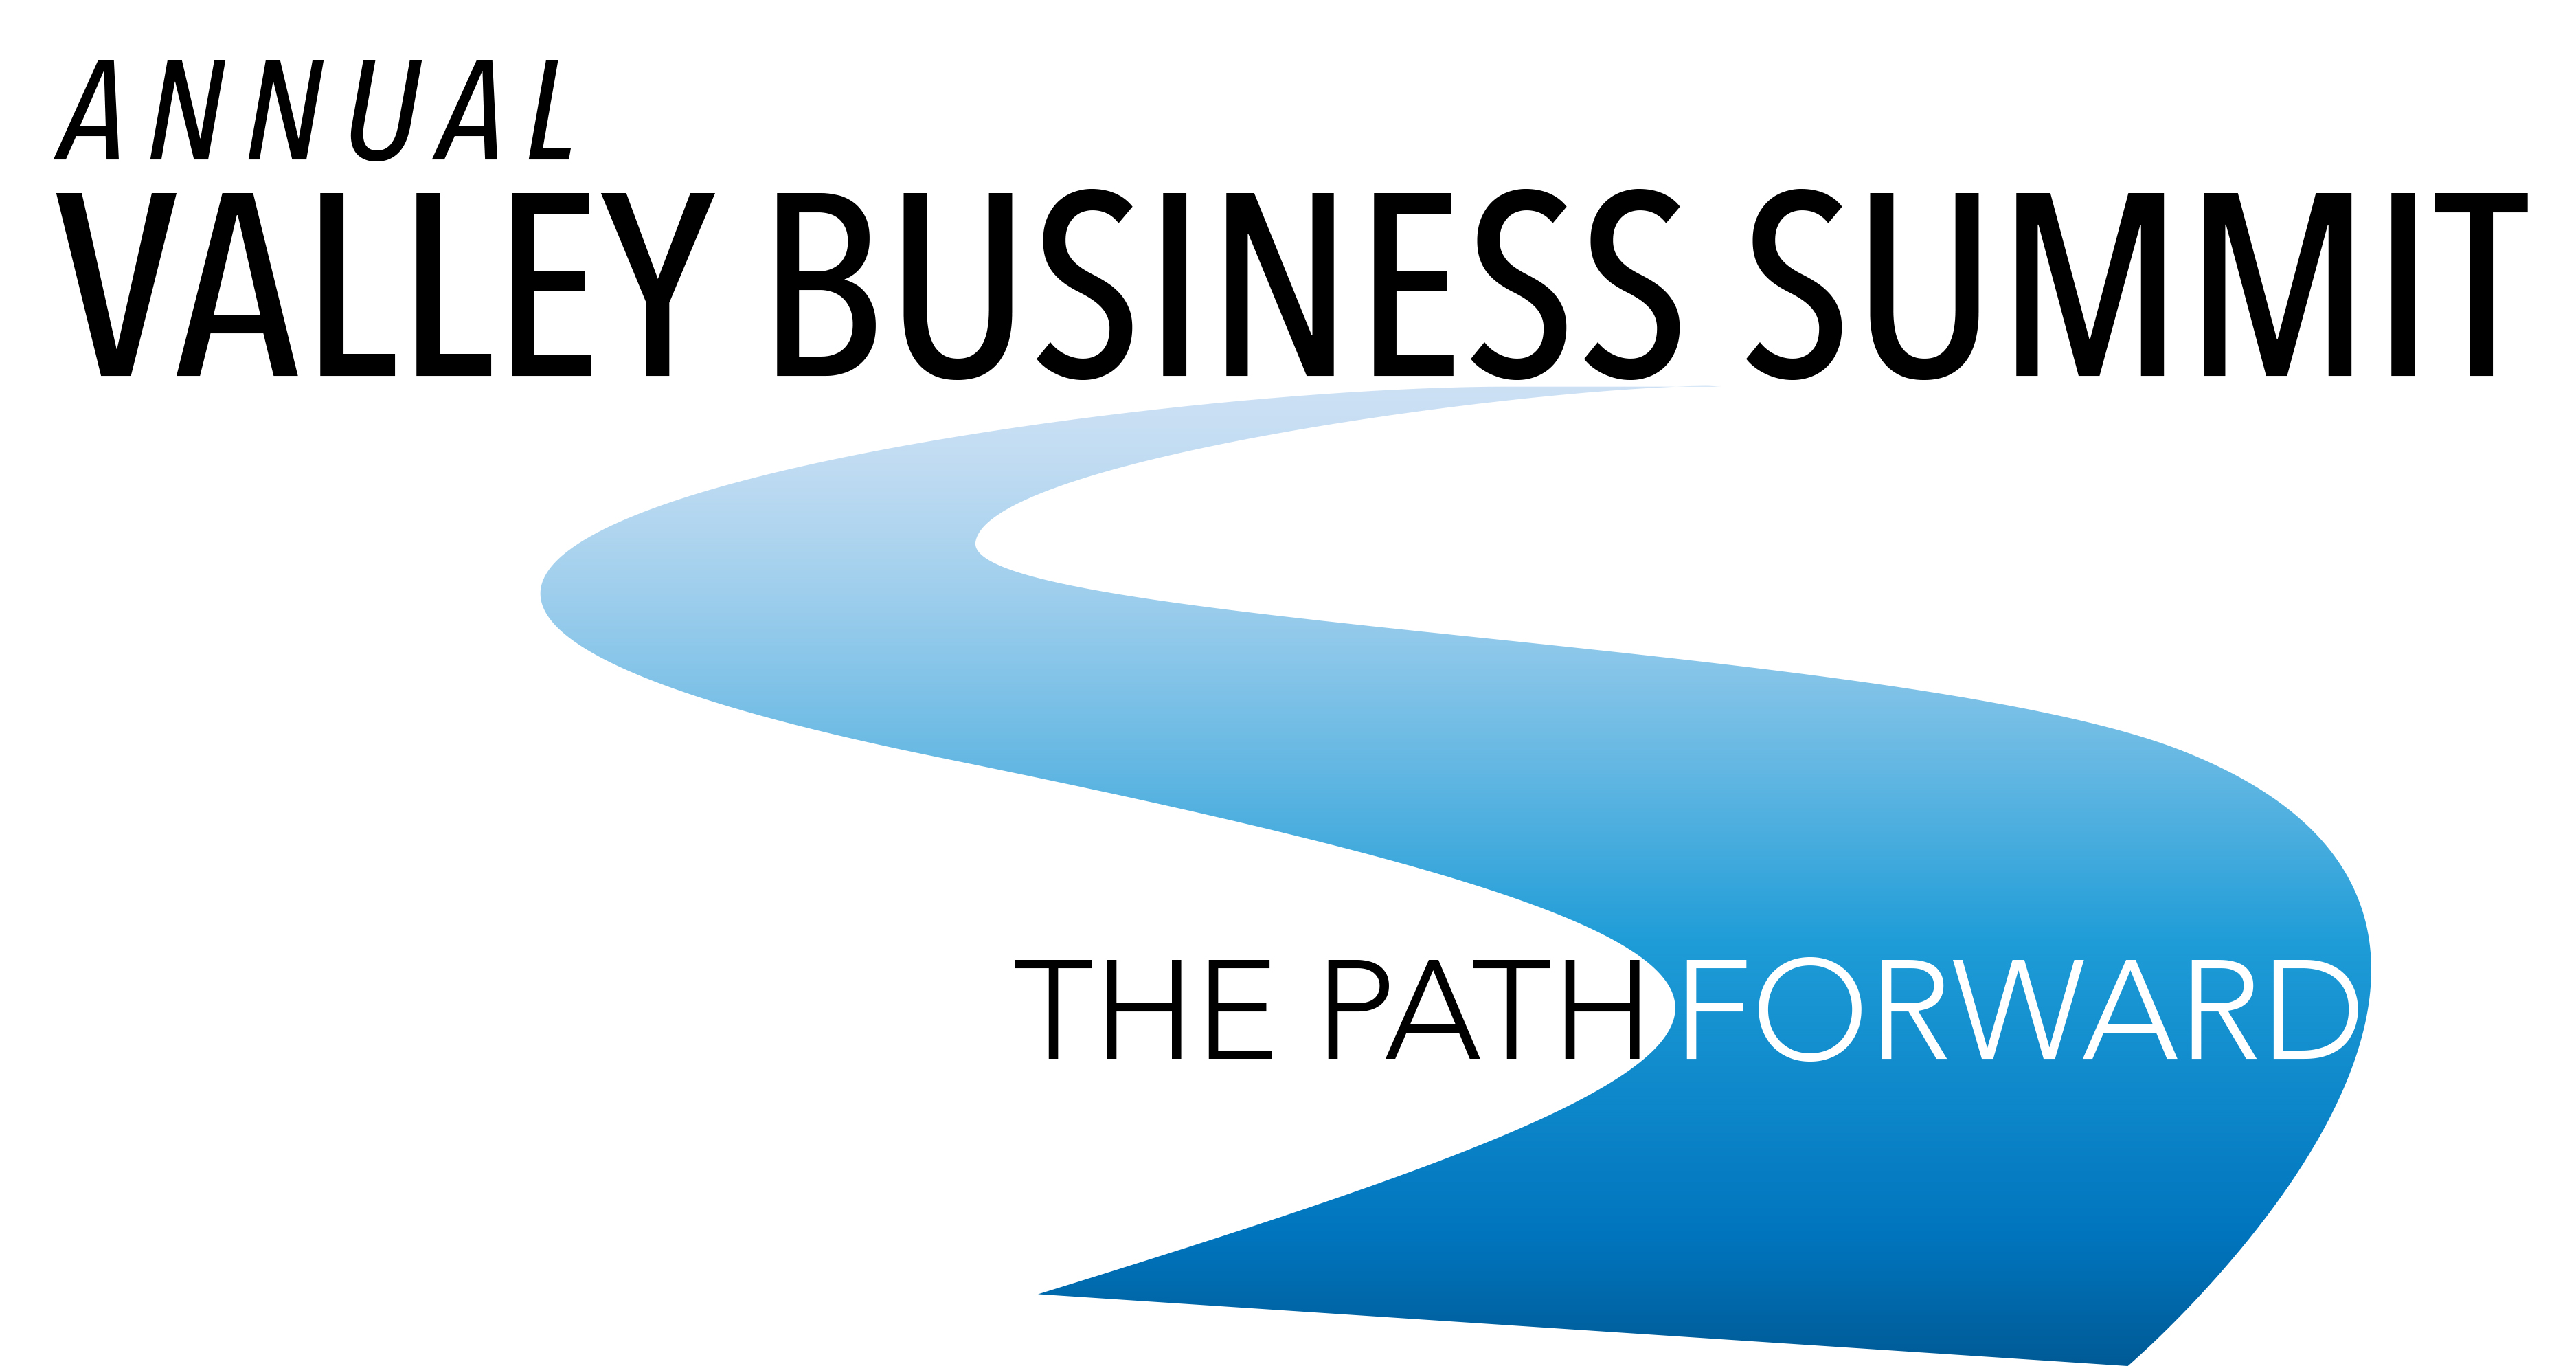 Valley Business Summit 2016 - The Path Forward @ BRCC Plecker Center | Weyers Cave | Virginia | United States